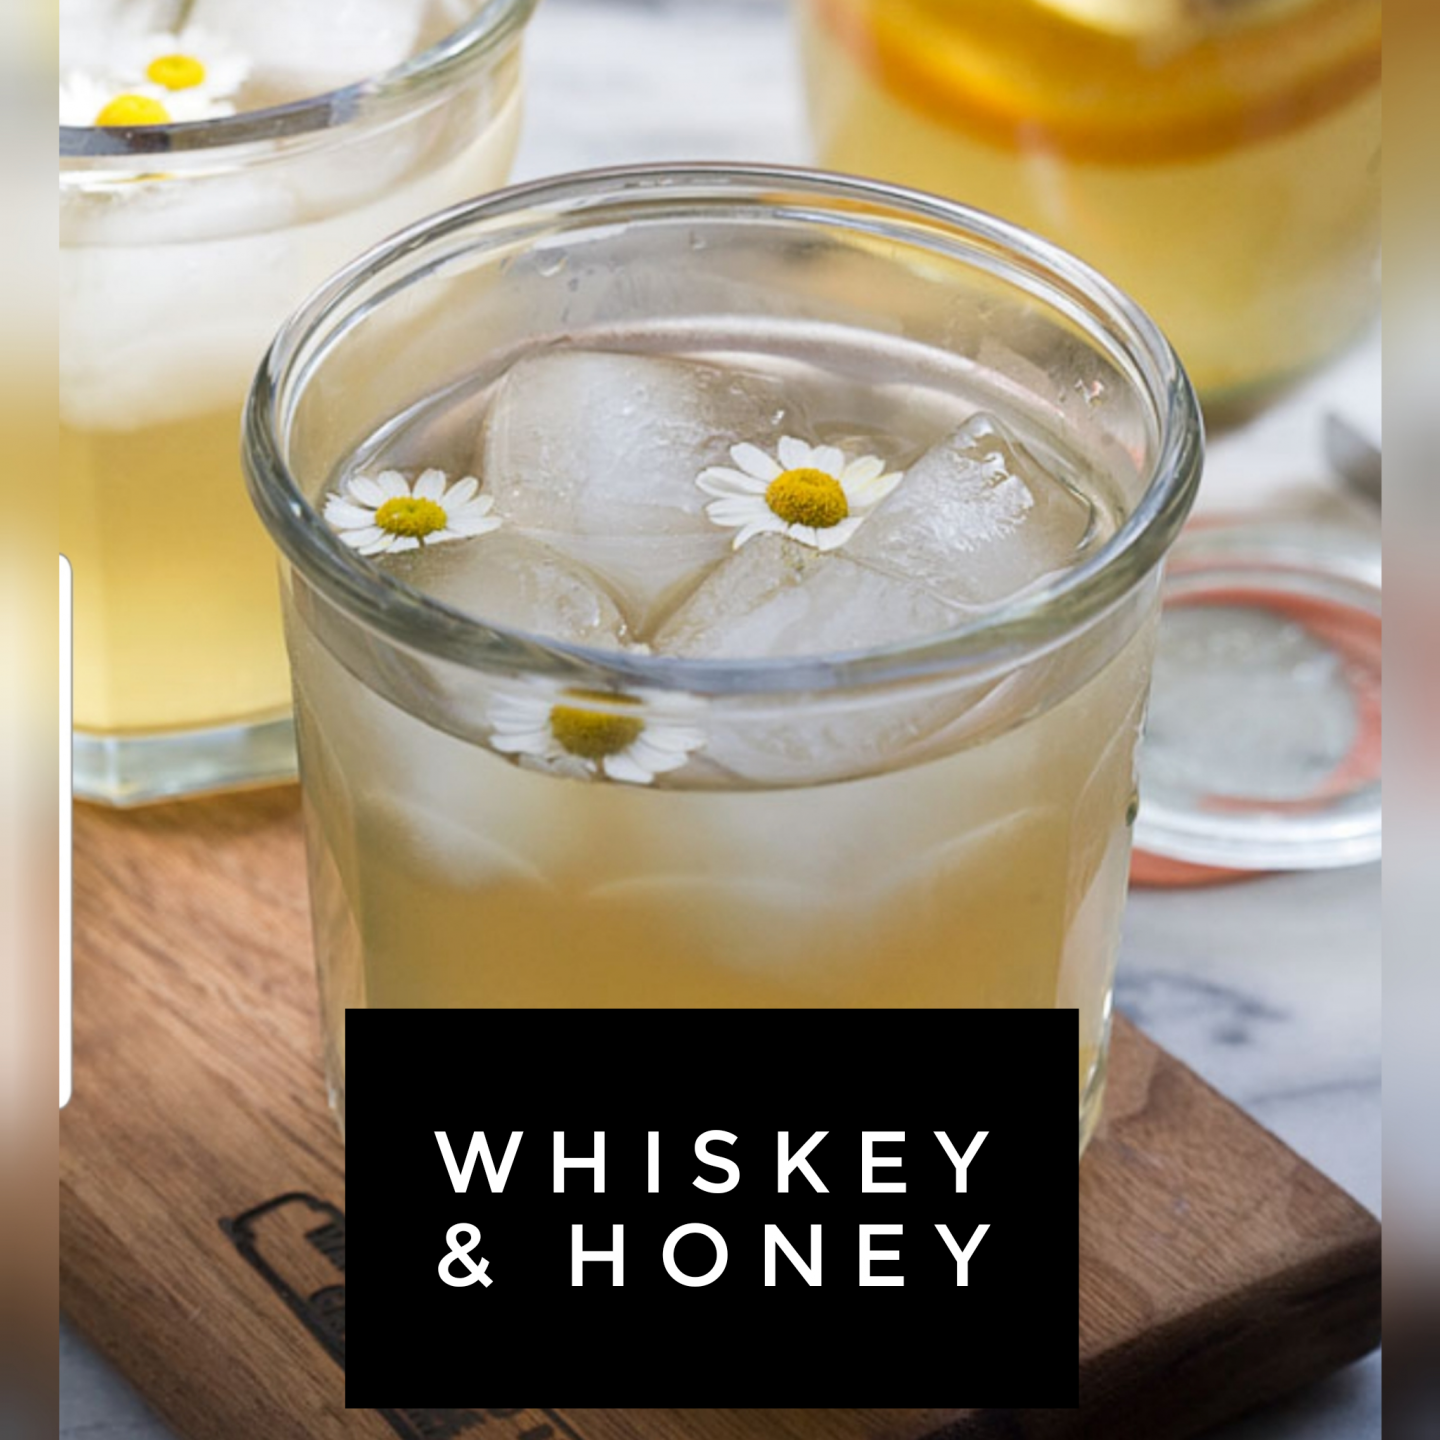 Whiskey face mask. Whiskey could bring down the inflammation of blemishes and control excess oil and it has antiseptic properties remove bacteria and dirt.